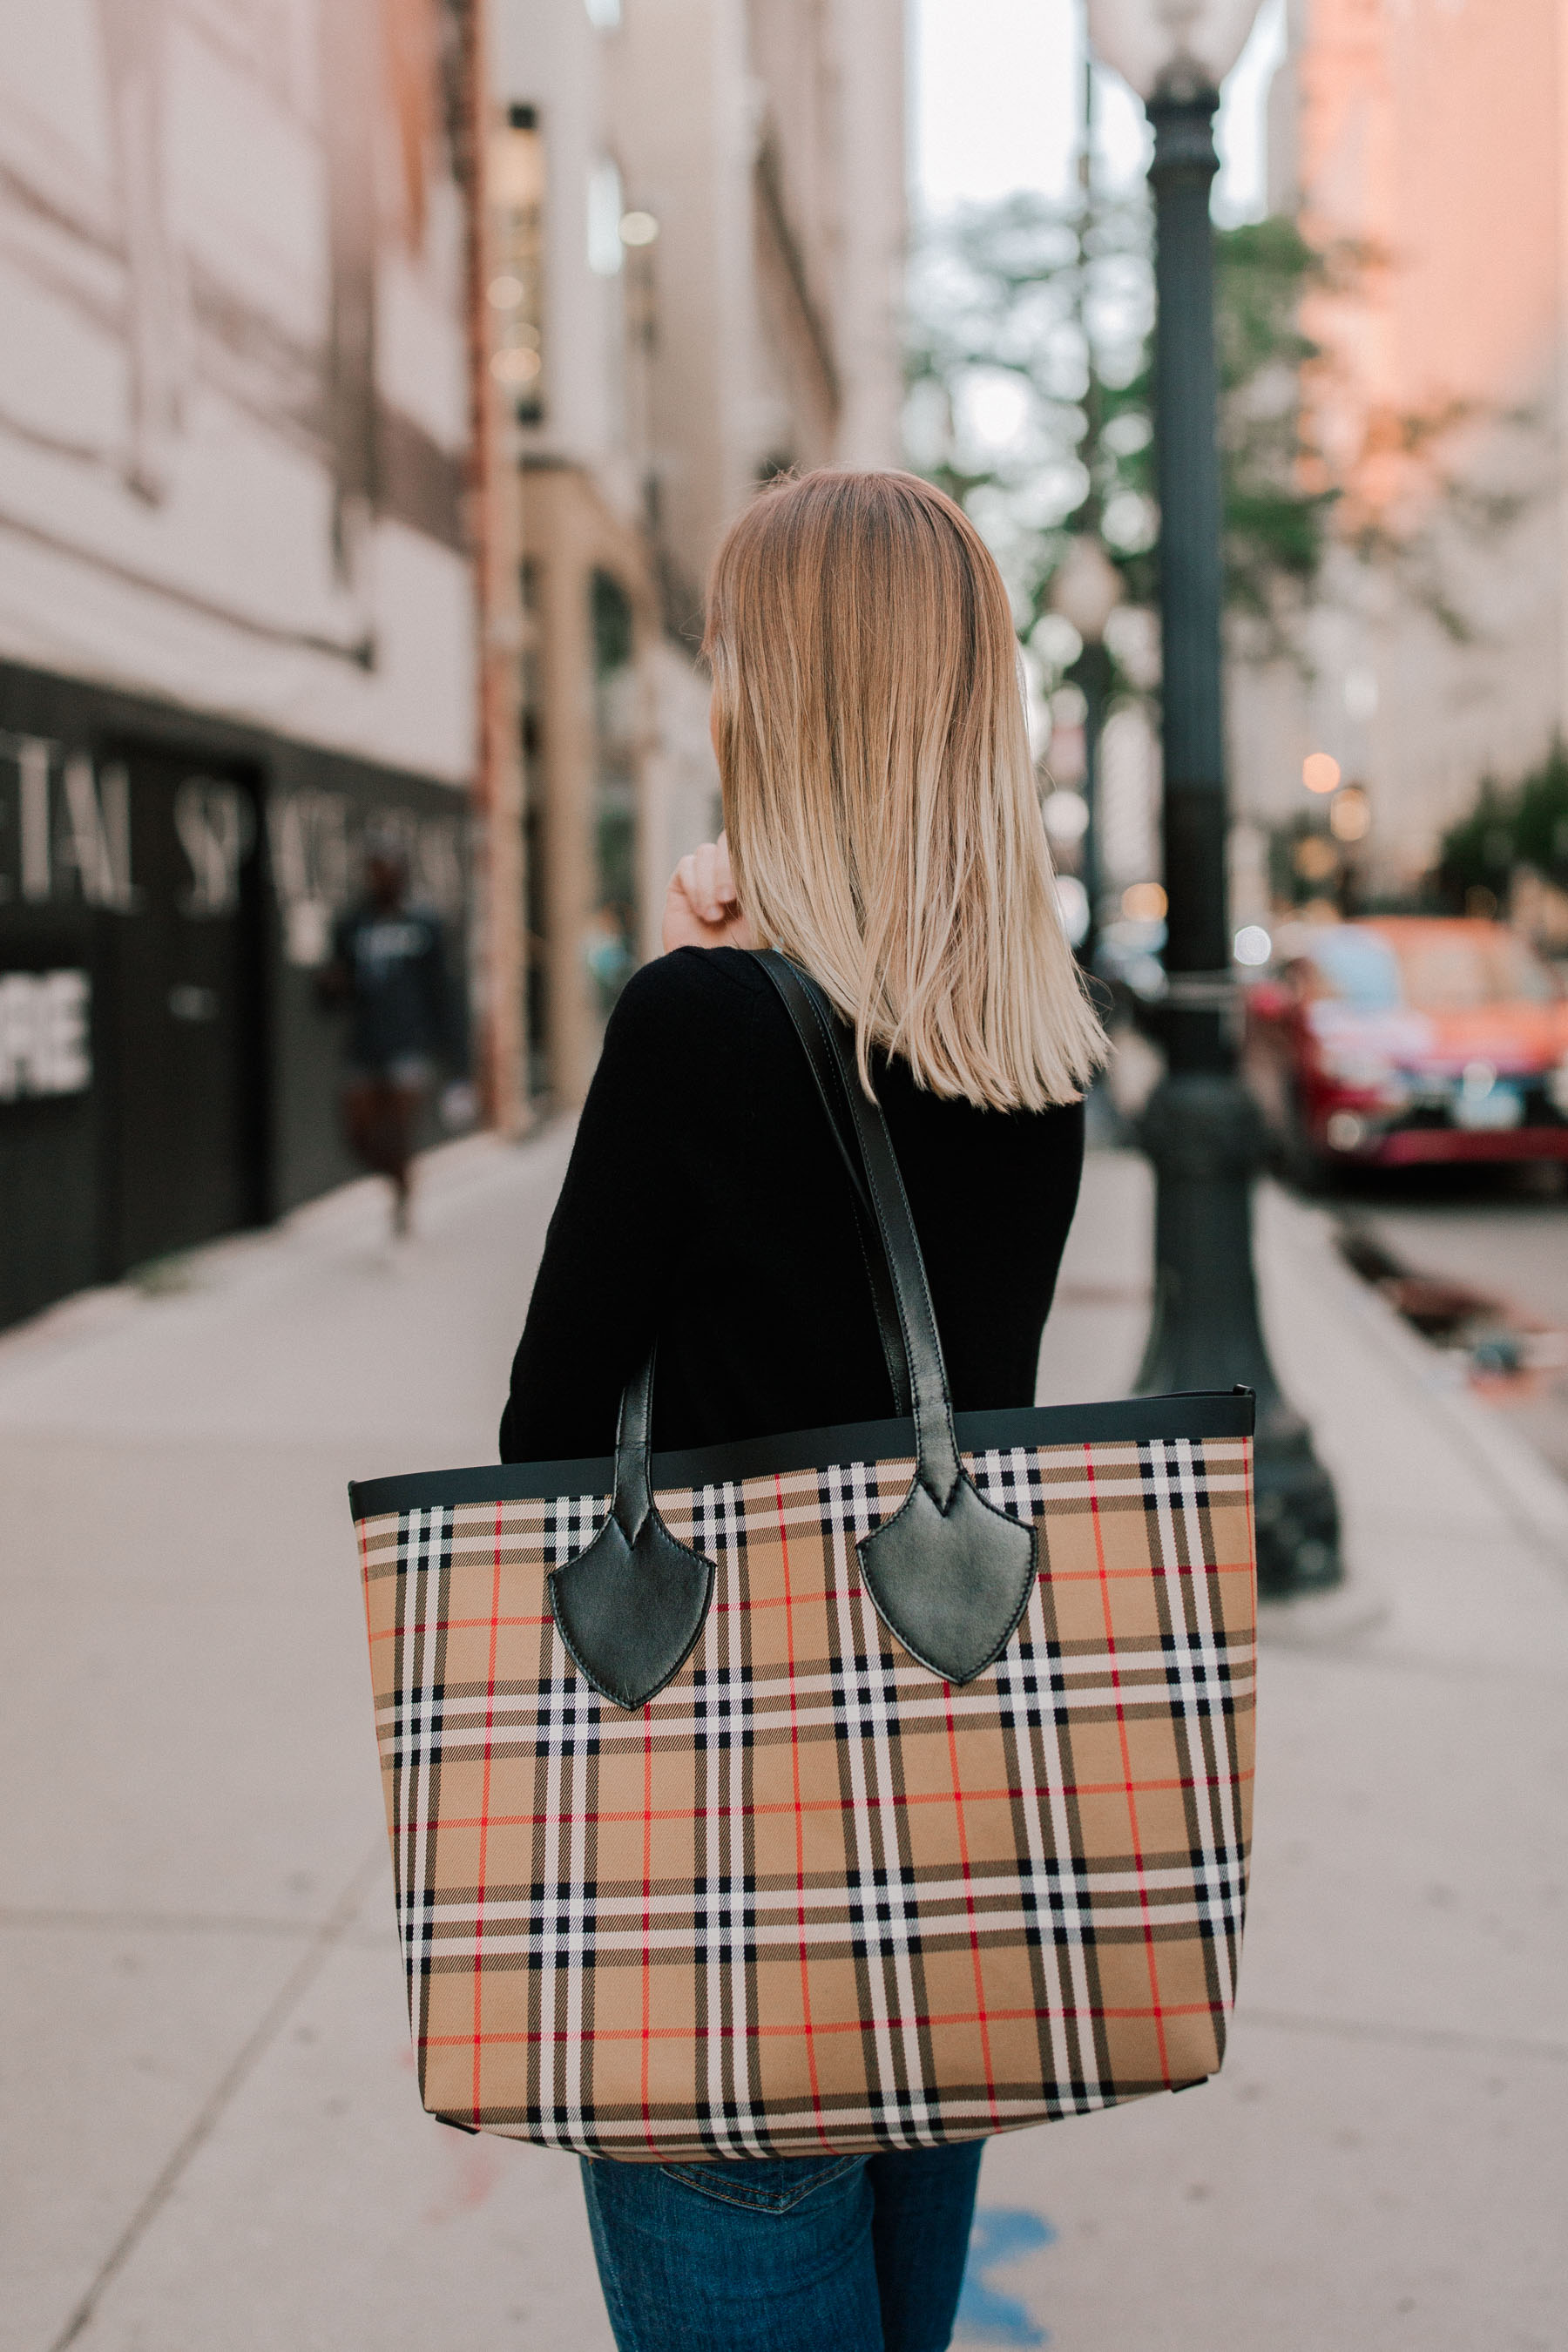 Burberry Tote / Black Cashmere Sweater - Kelly in the City